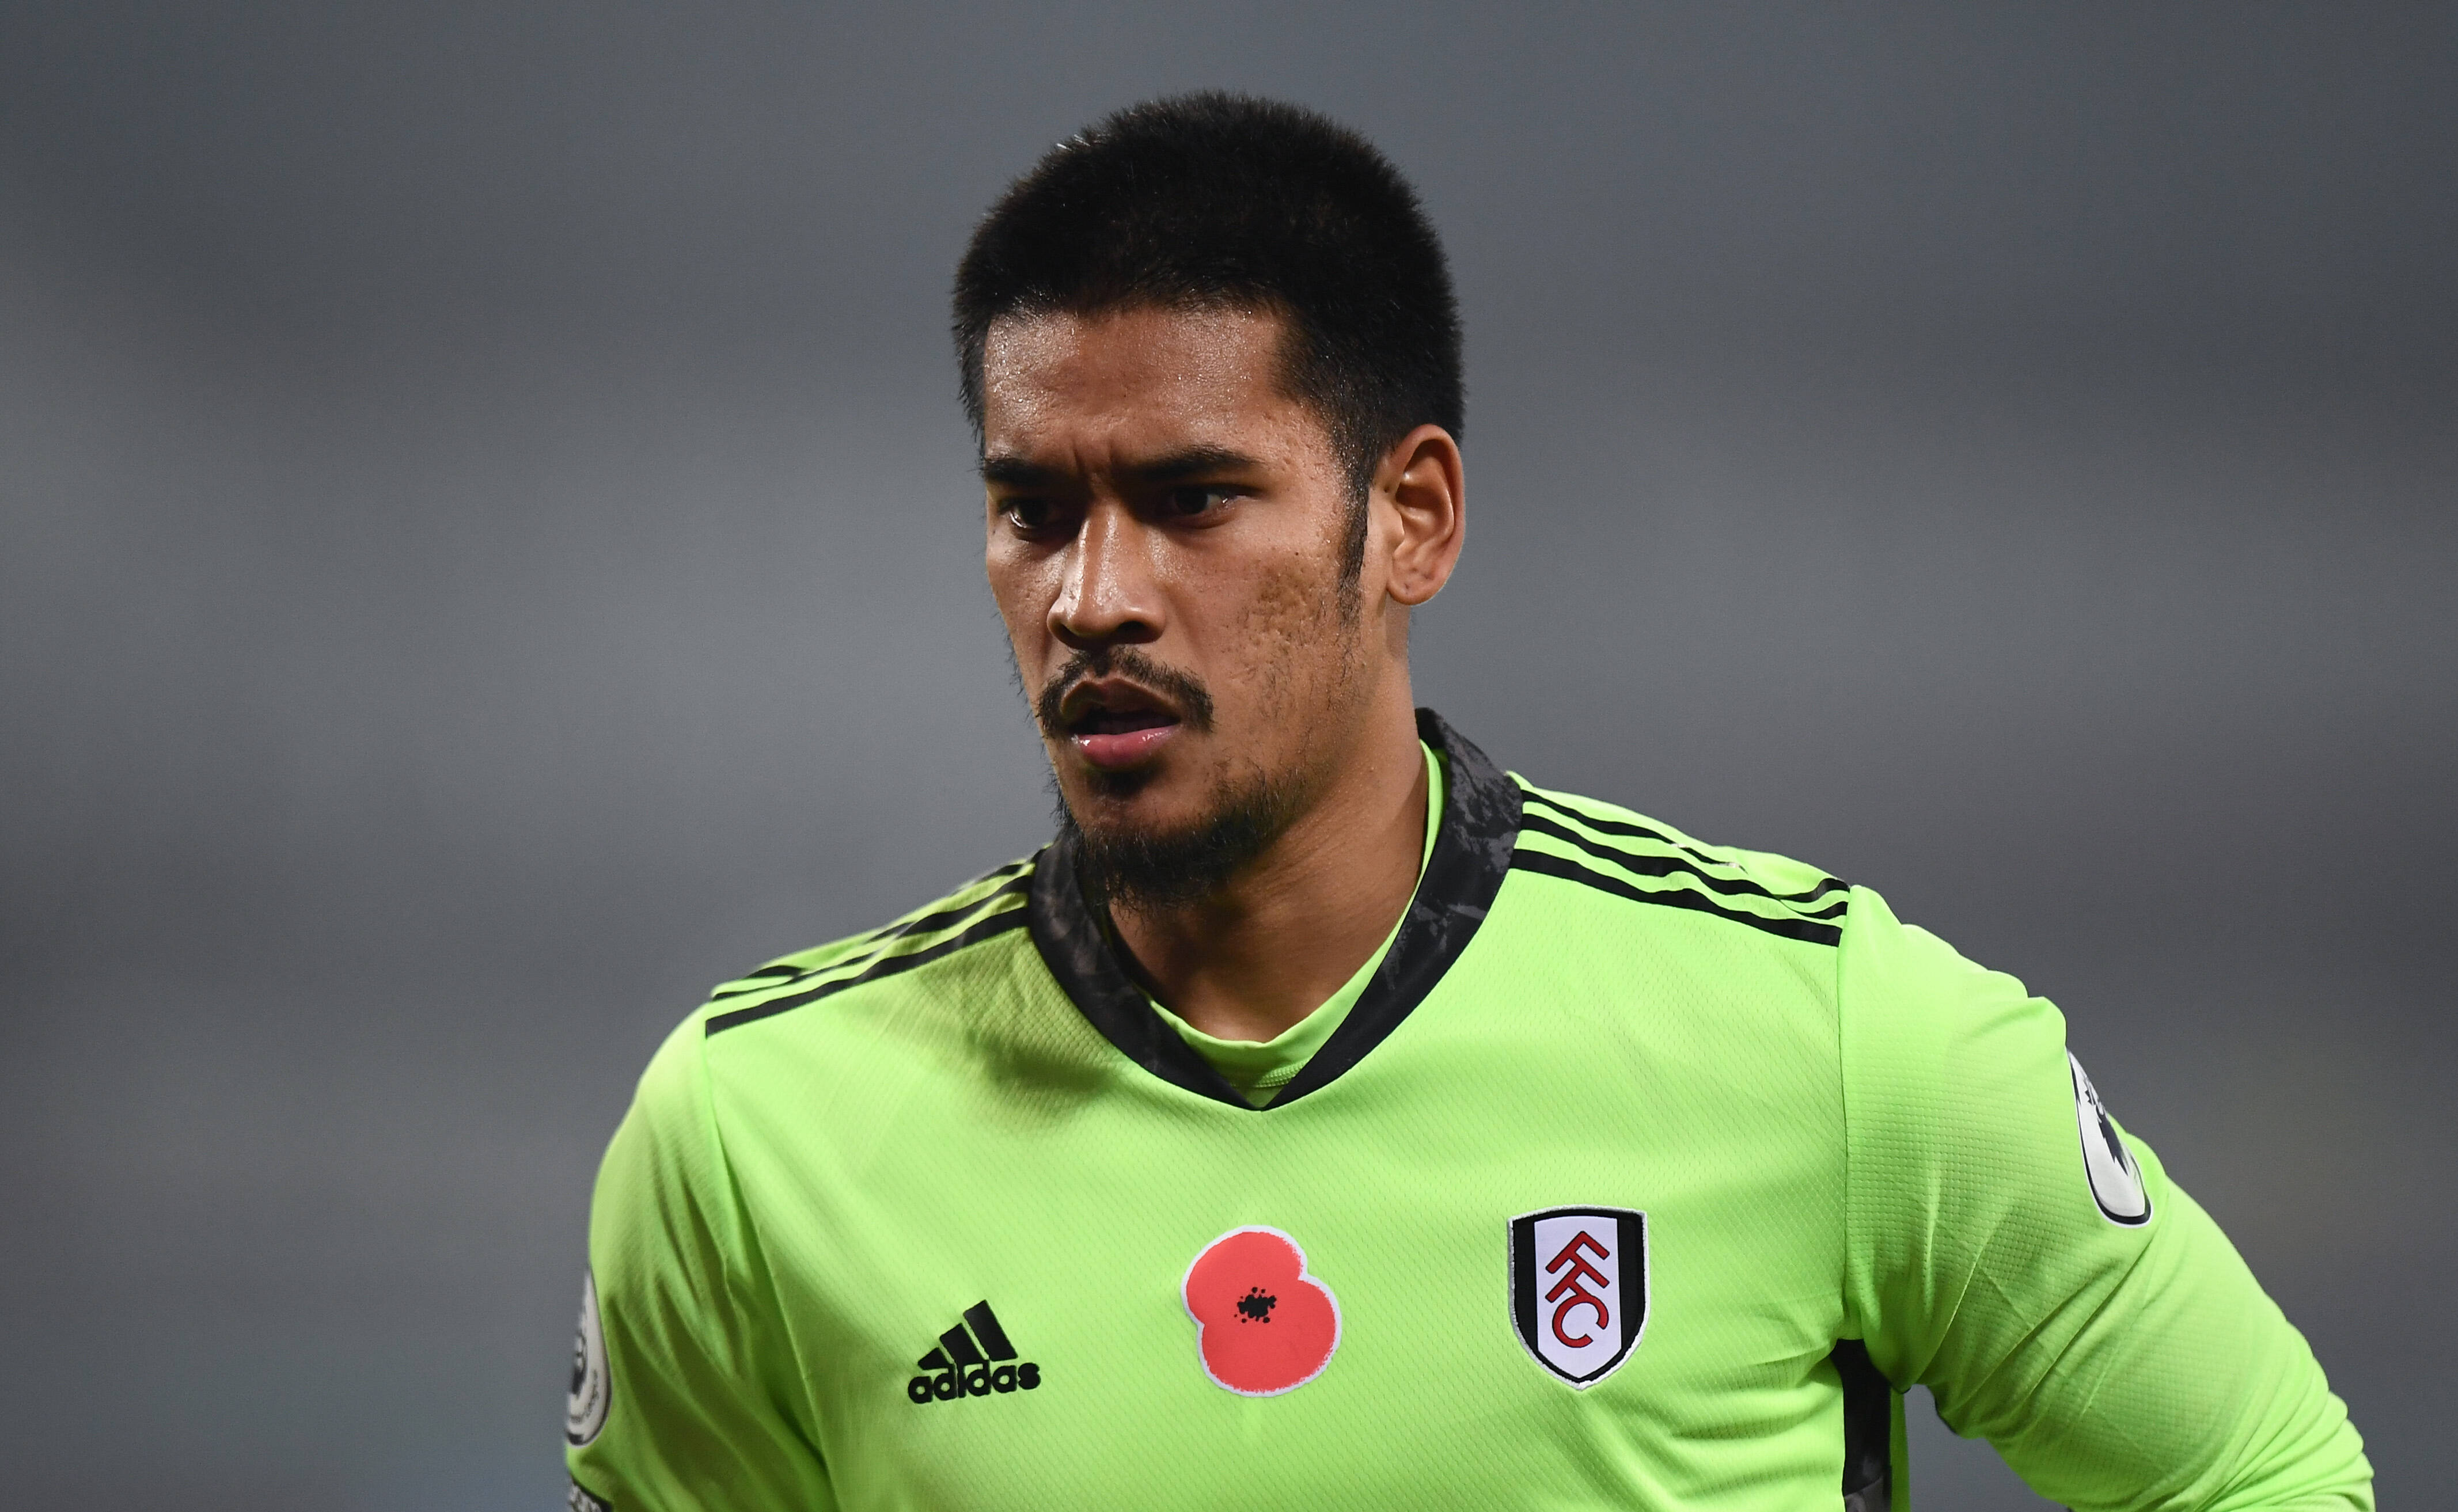 Video Fulham Goalkeeper On Finding A Club Over The Summer Losing His Job To Buffon And Future At Psg Psg Talk